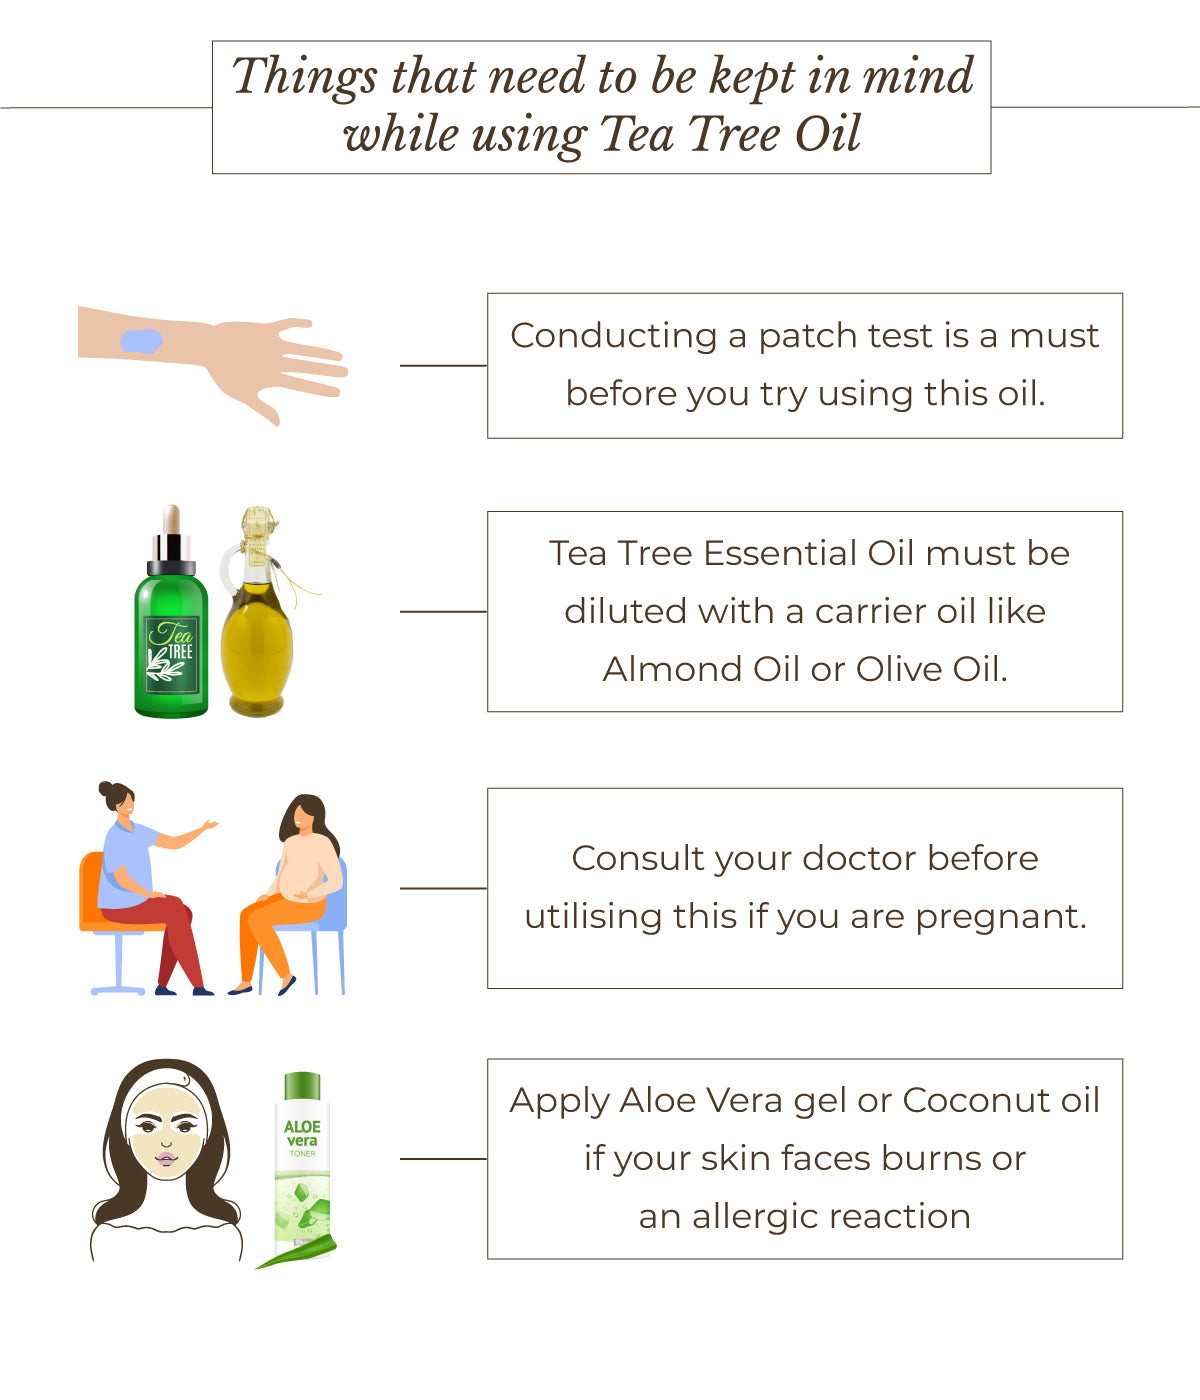 This is an image of things to keep in mind before using Tea Tree Oil